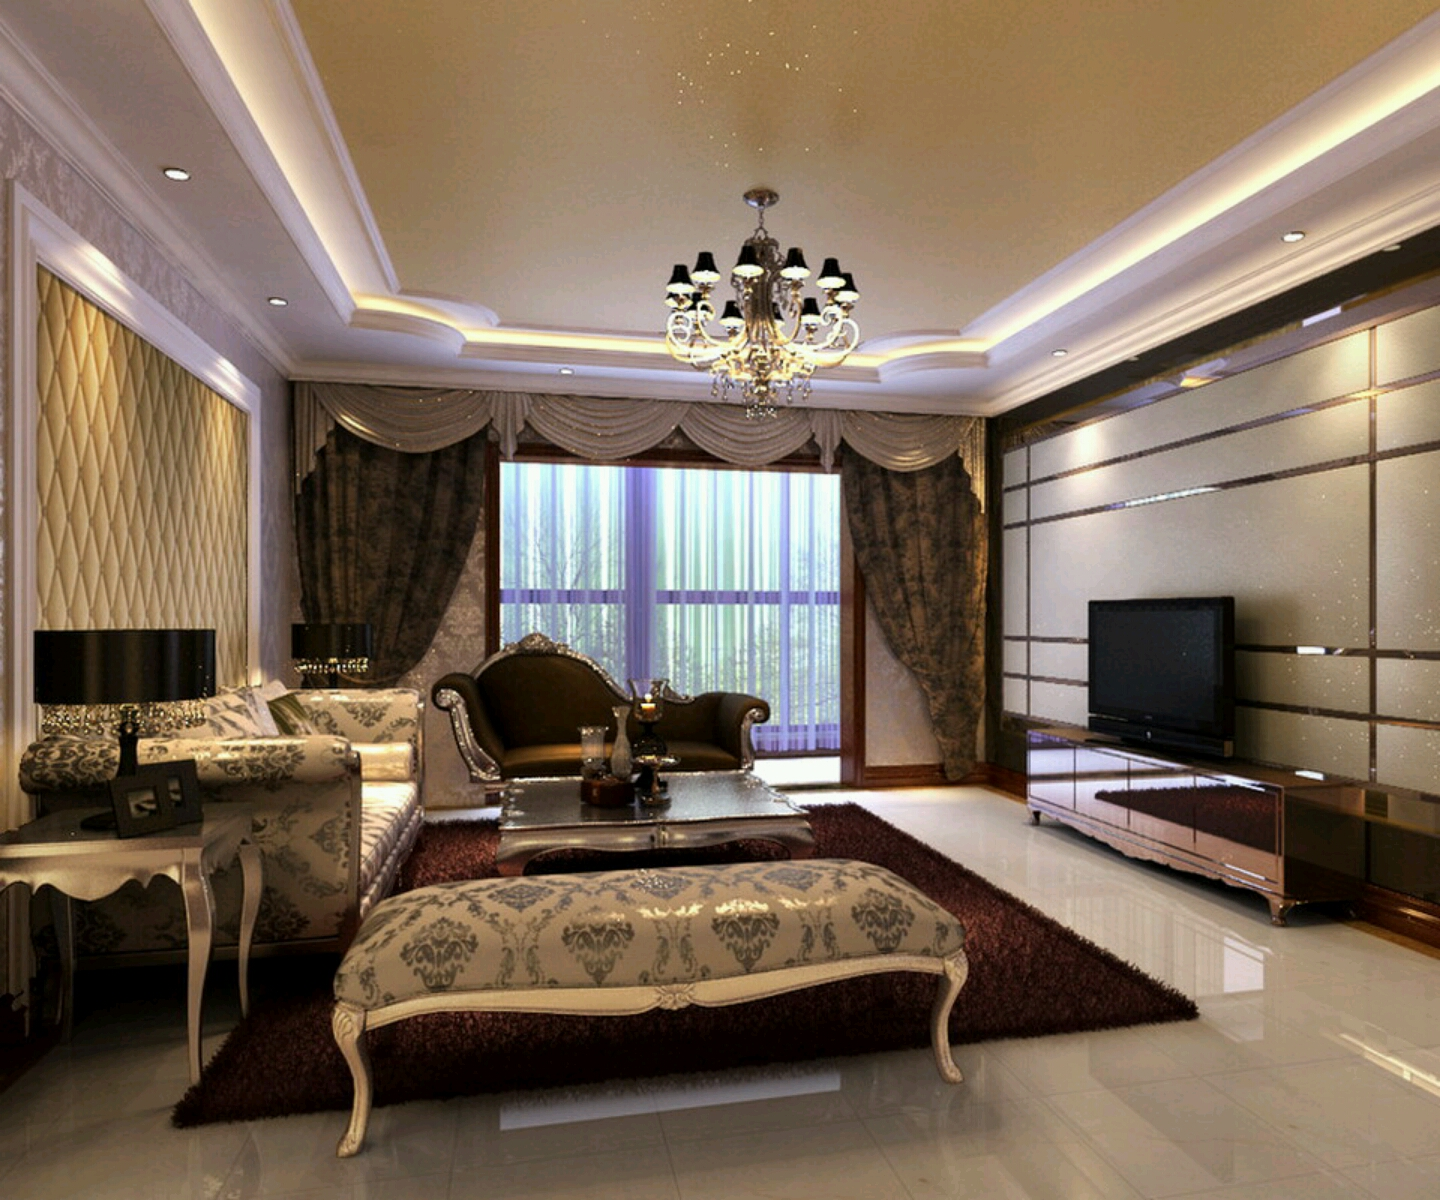 Interior decorating ideas living rooms dream house for House and home living room ideas